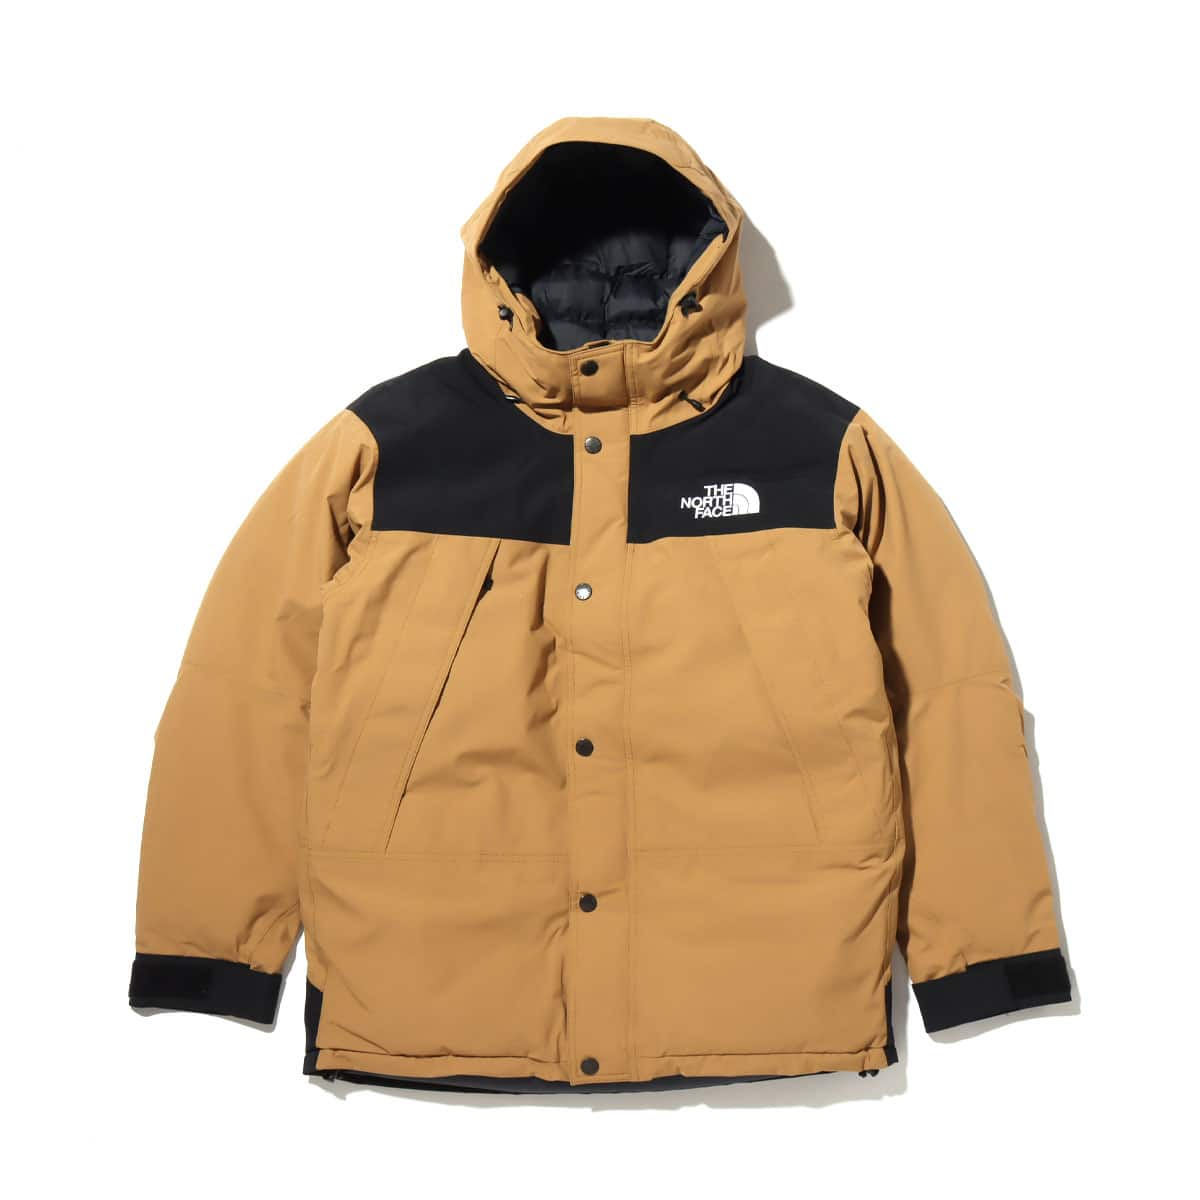 THE NORTH FACE MOUNTAIN DOWN JACKET UTILITY BROWN 20FW-I_photo_large